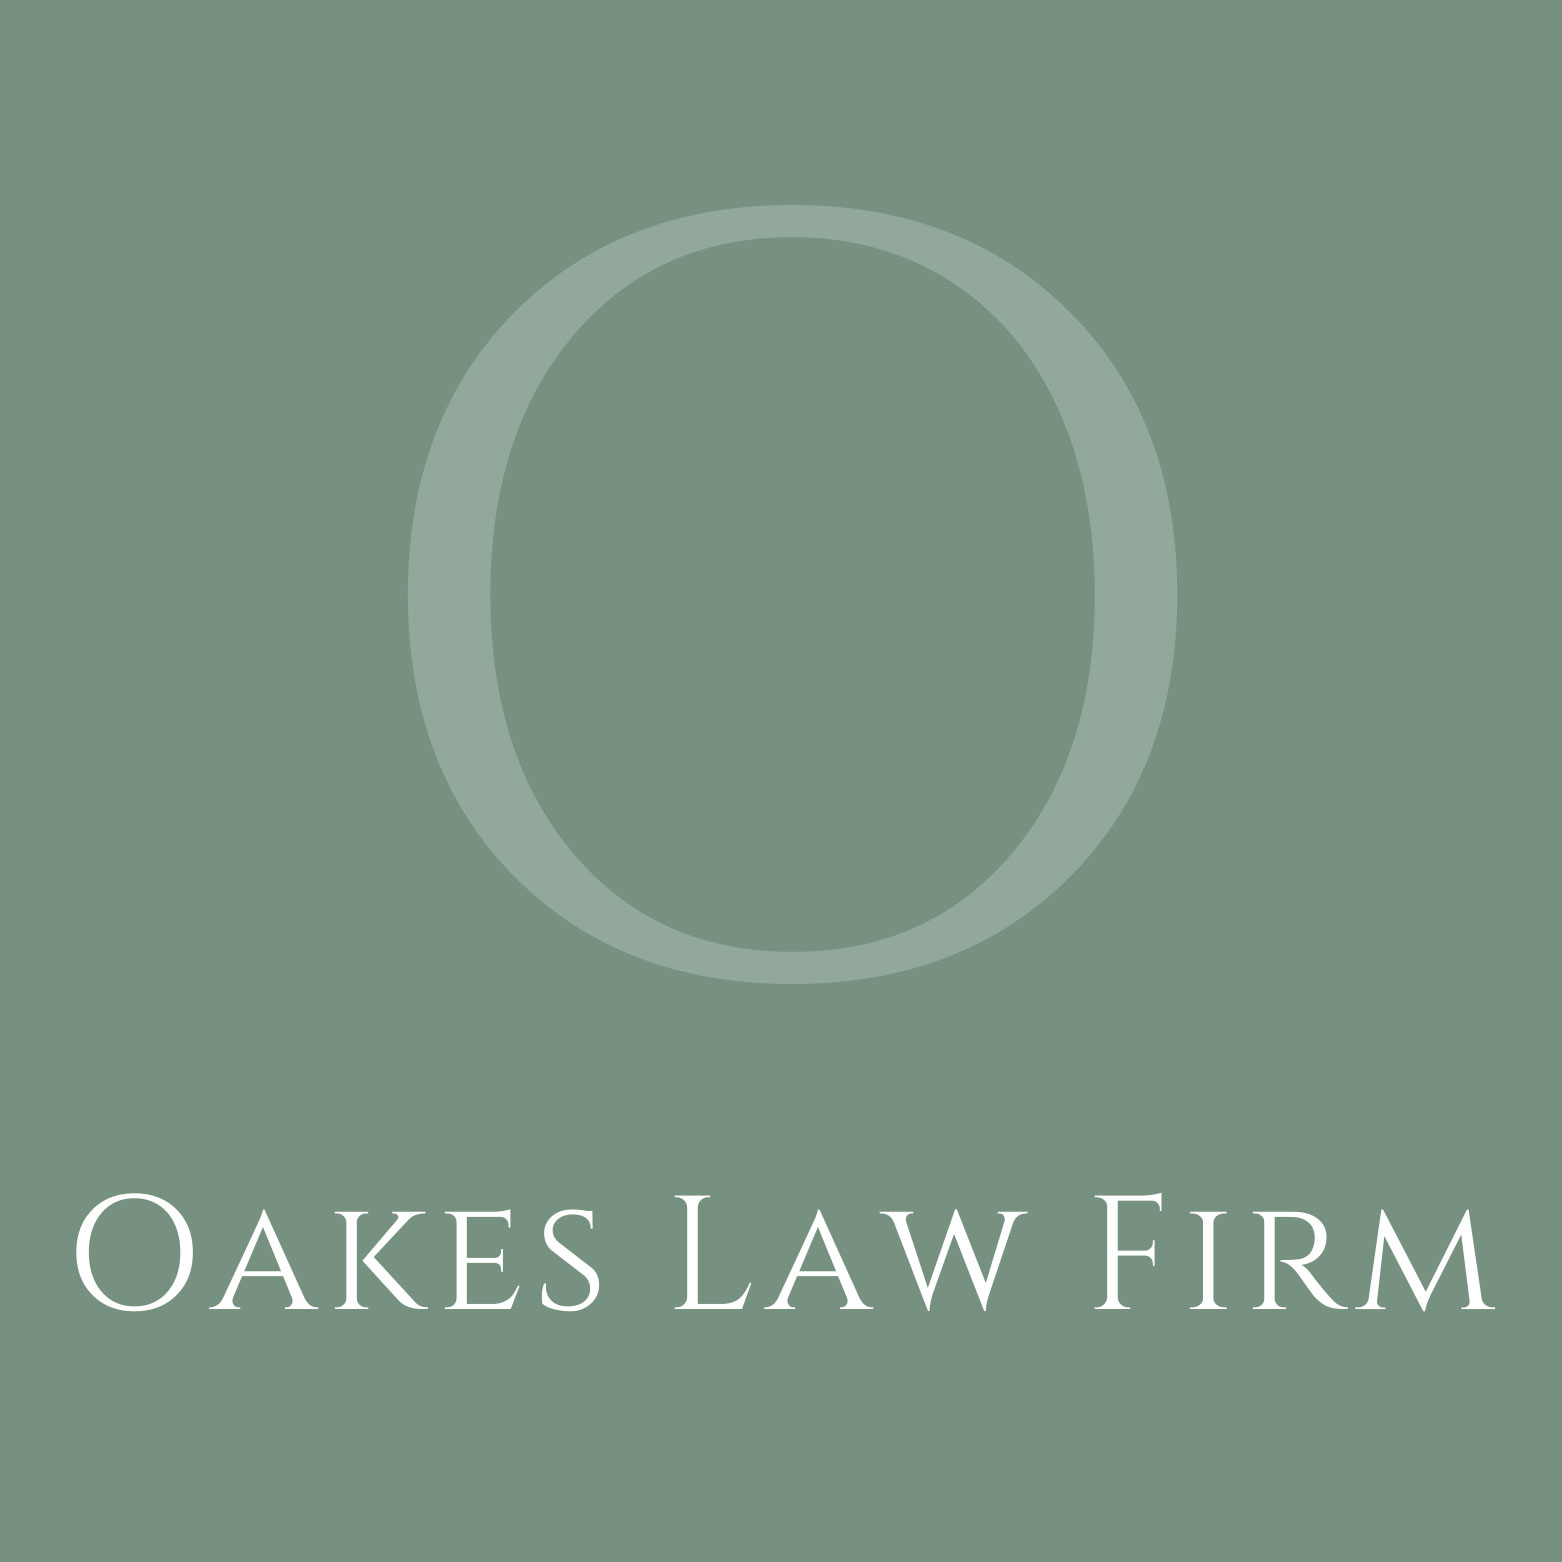 Oakes Law Firm